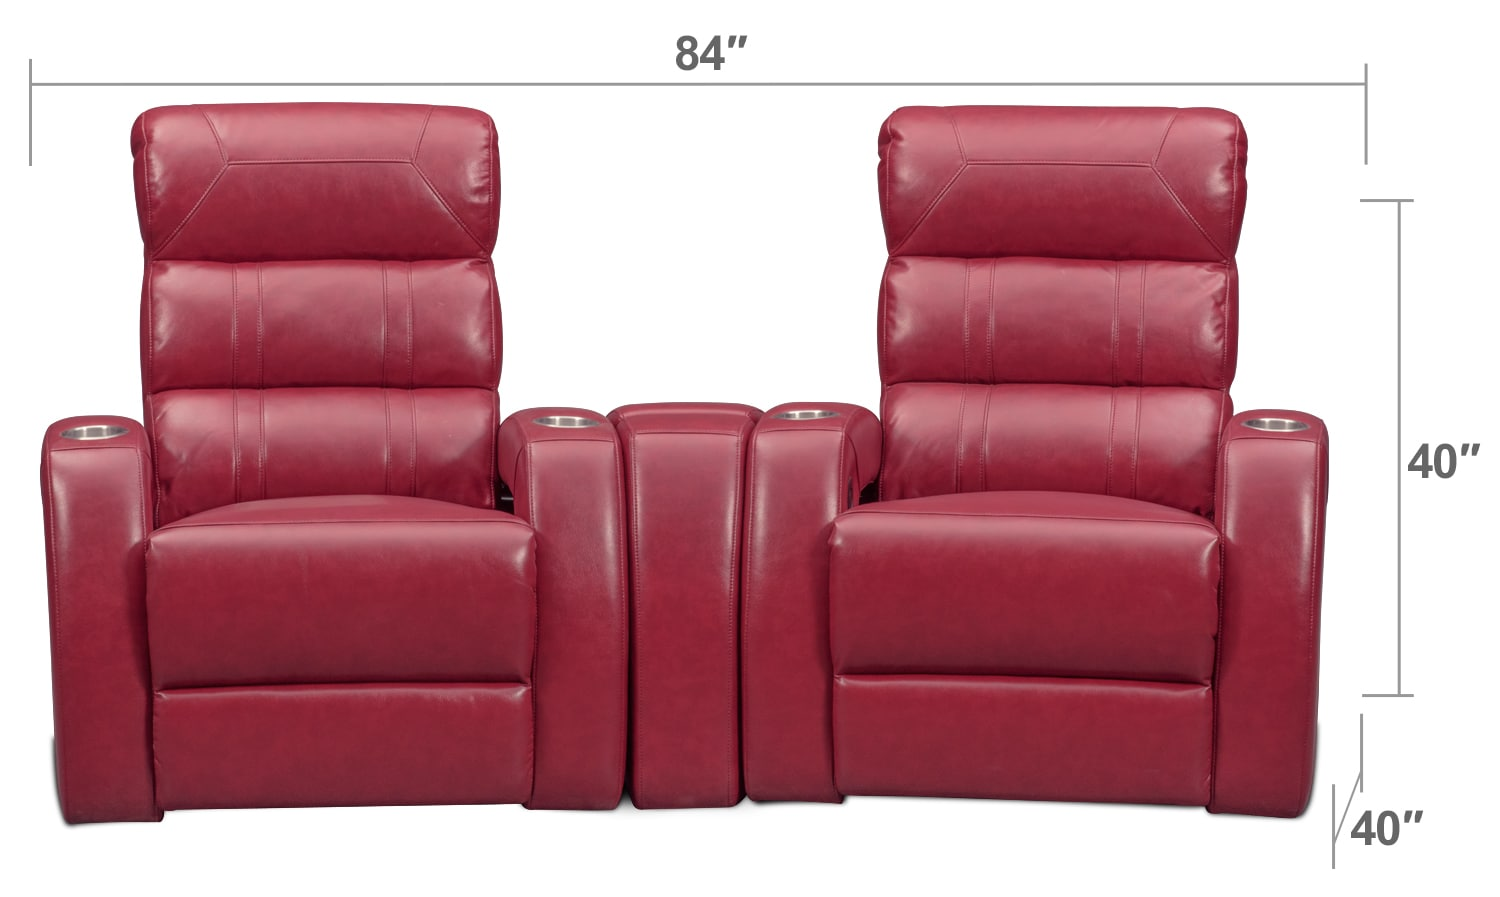 Living Room Furniture - Bravo 3-Piece Power Reclining Home Theater Sectional - Red